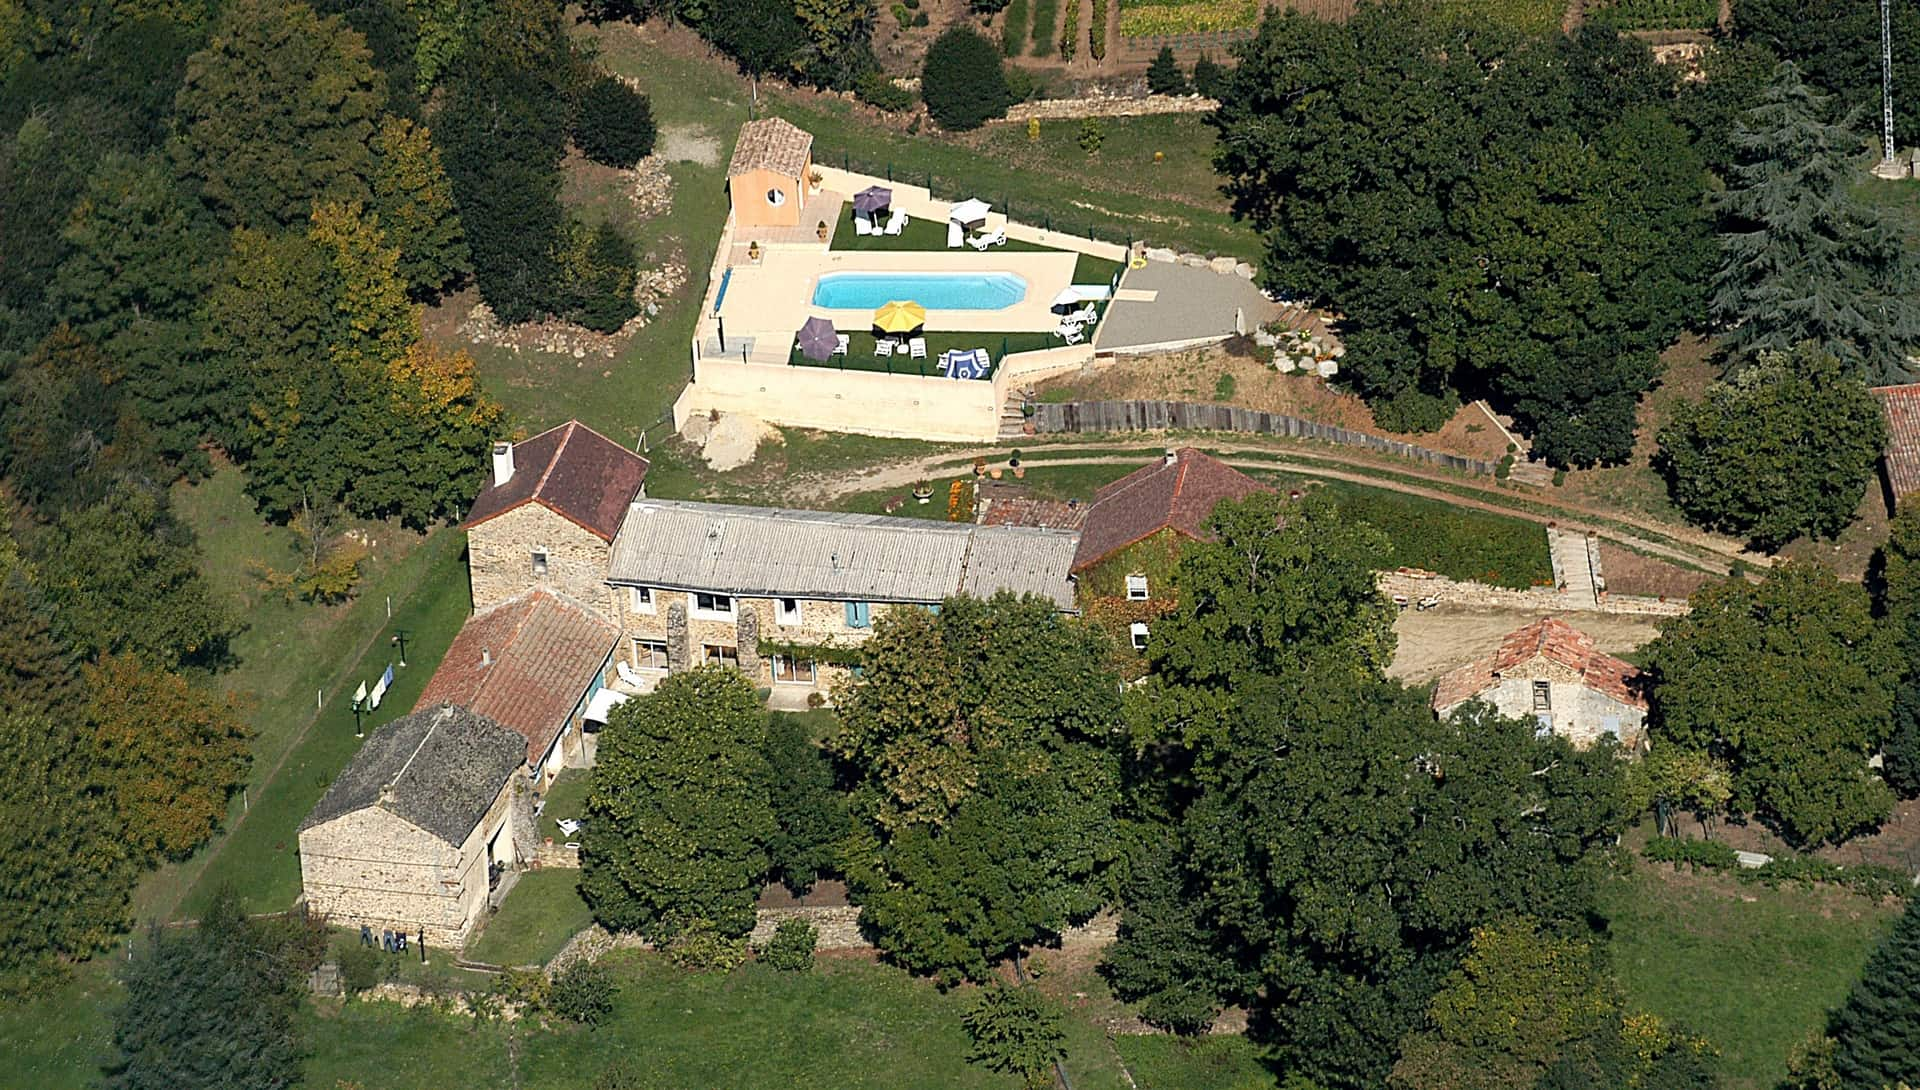 aerial view domaine de malouziès - character gites with swimming pool and charming bed and brekfasts near Carcassonne